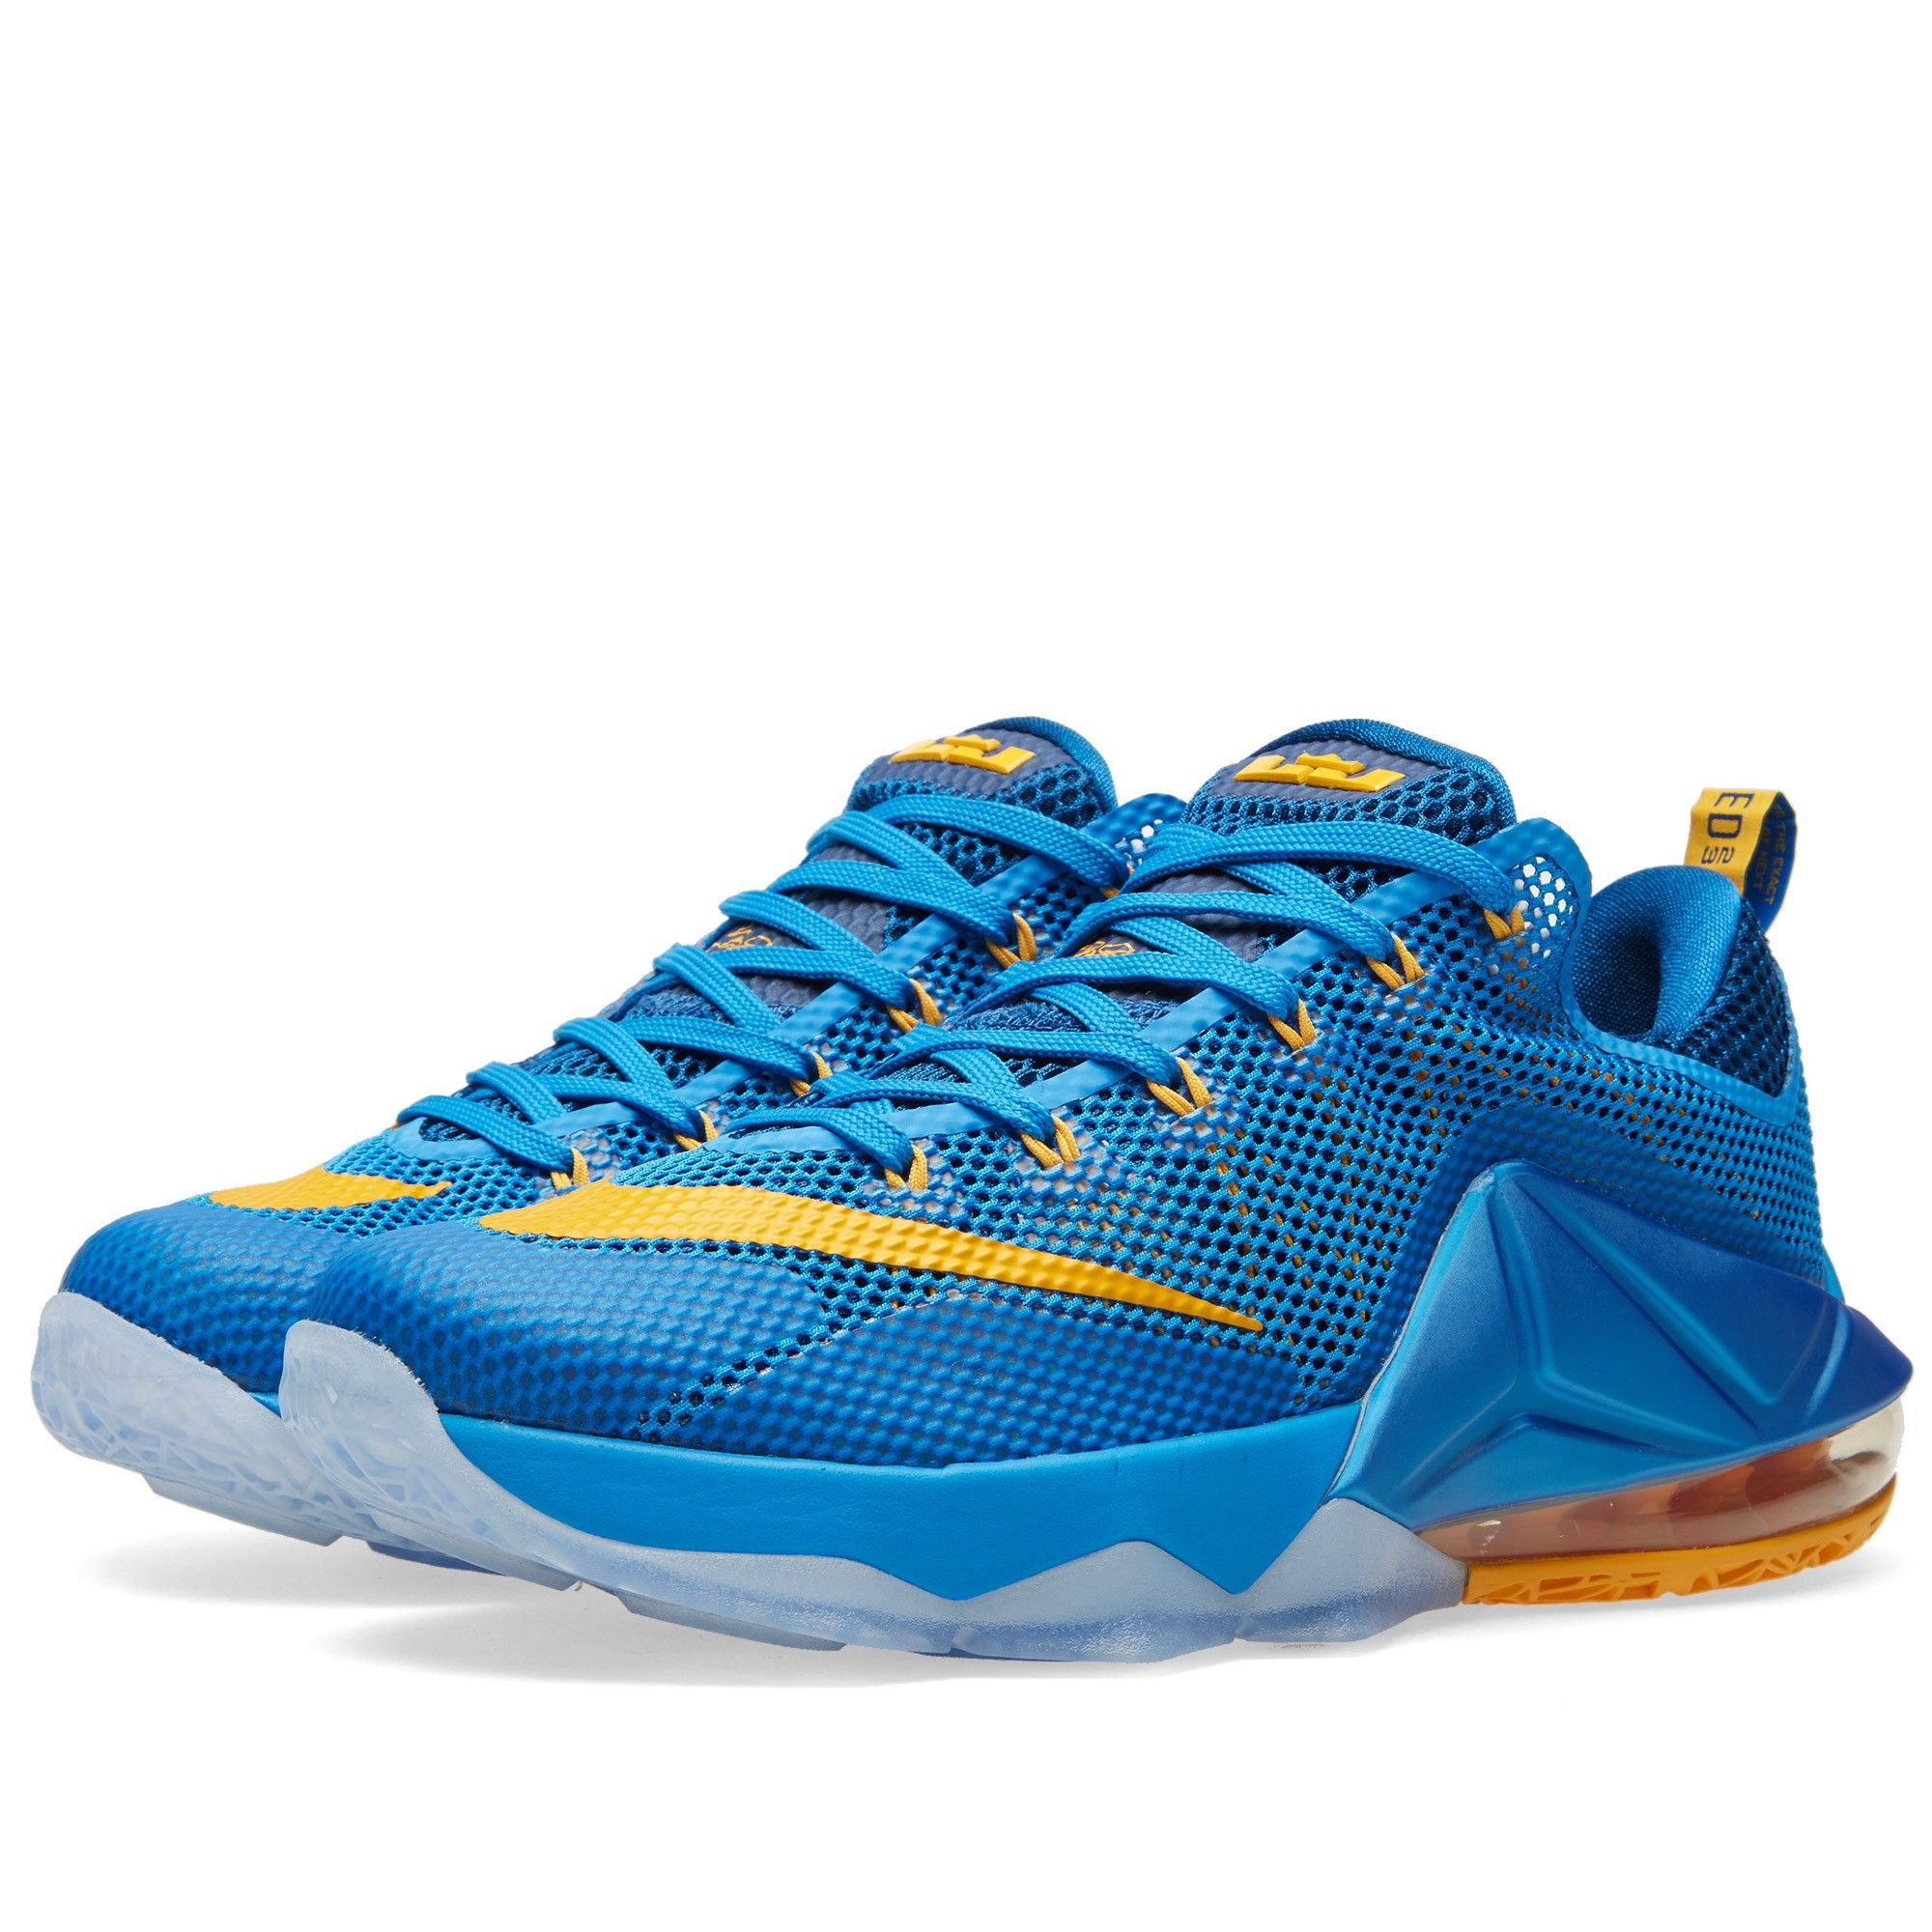 sale retailer 4e828 06b1a Men s Nike LeBron XII Low  Entourage  (Photo Blue   University Gold) Article